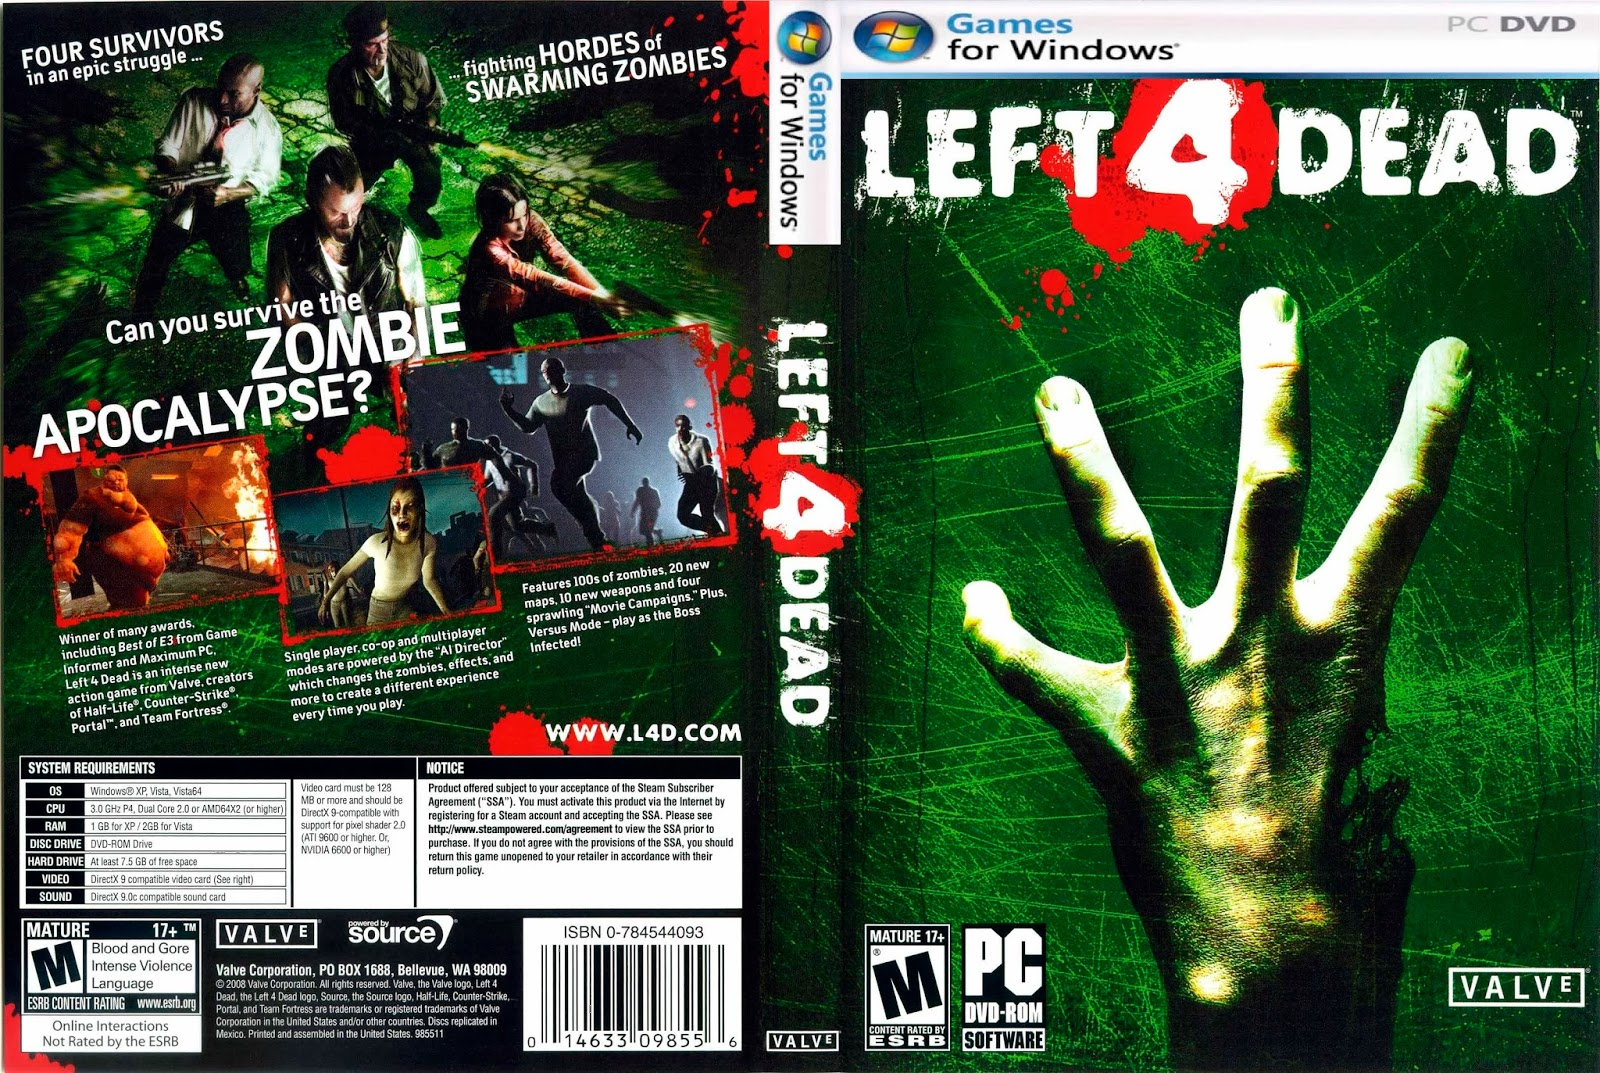 Left 4 Dead PC DVD Capa